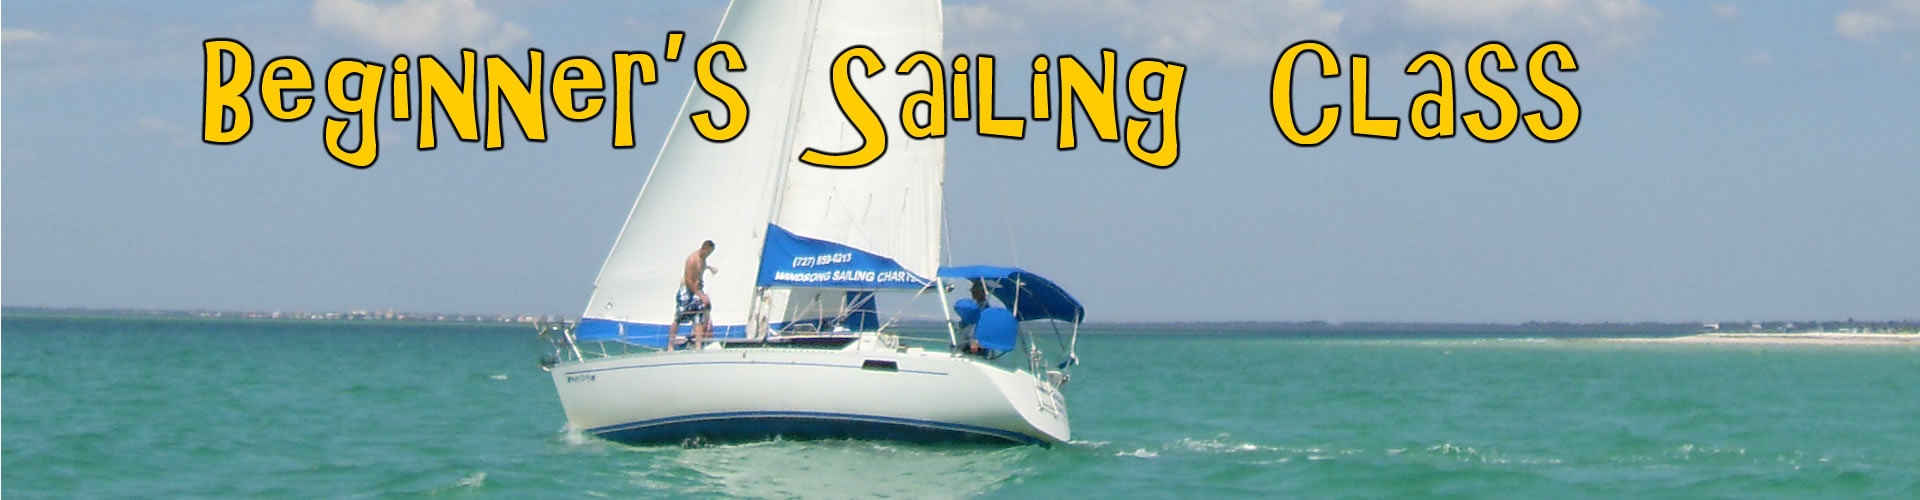 Sailing School Intoduction